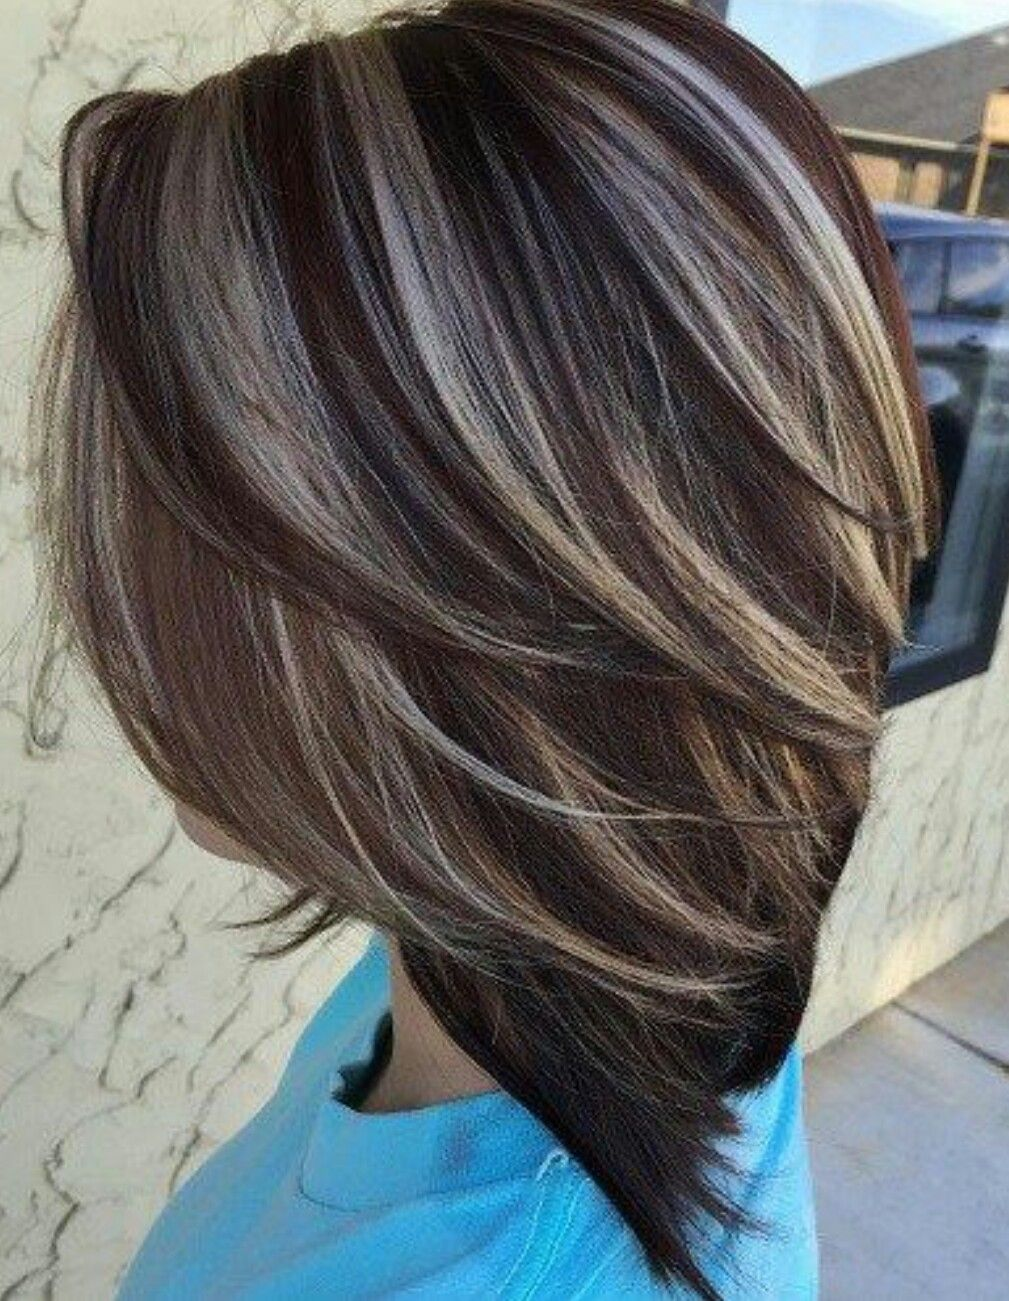 Highlight Hairstyles Pinnikole Turner On Me Time  Pinterest  Hair Shades And Beauty